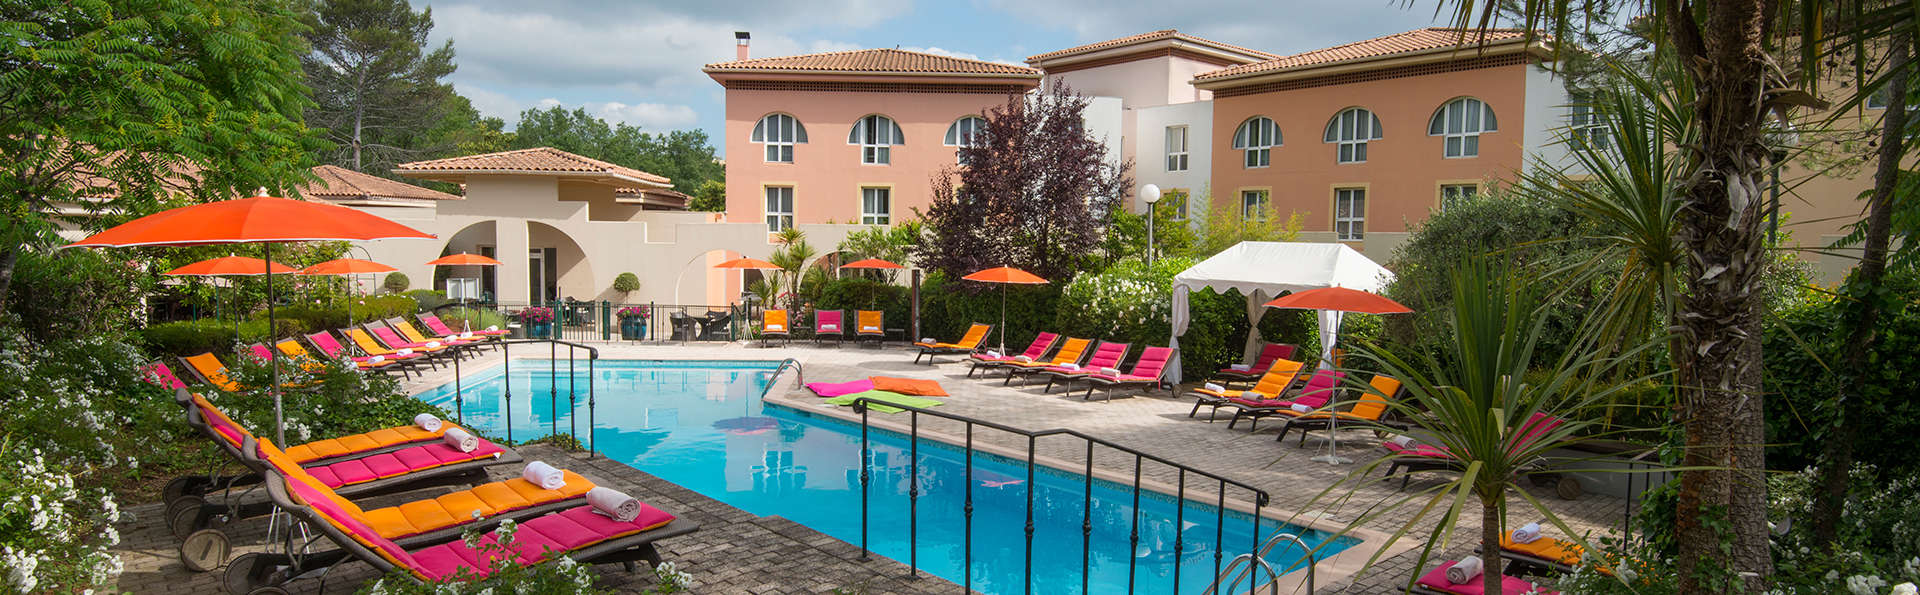 Mercure Antibes Sophia Antipolis - EDIT_pool.jpg